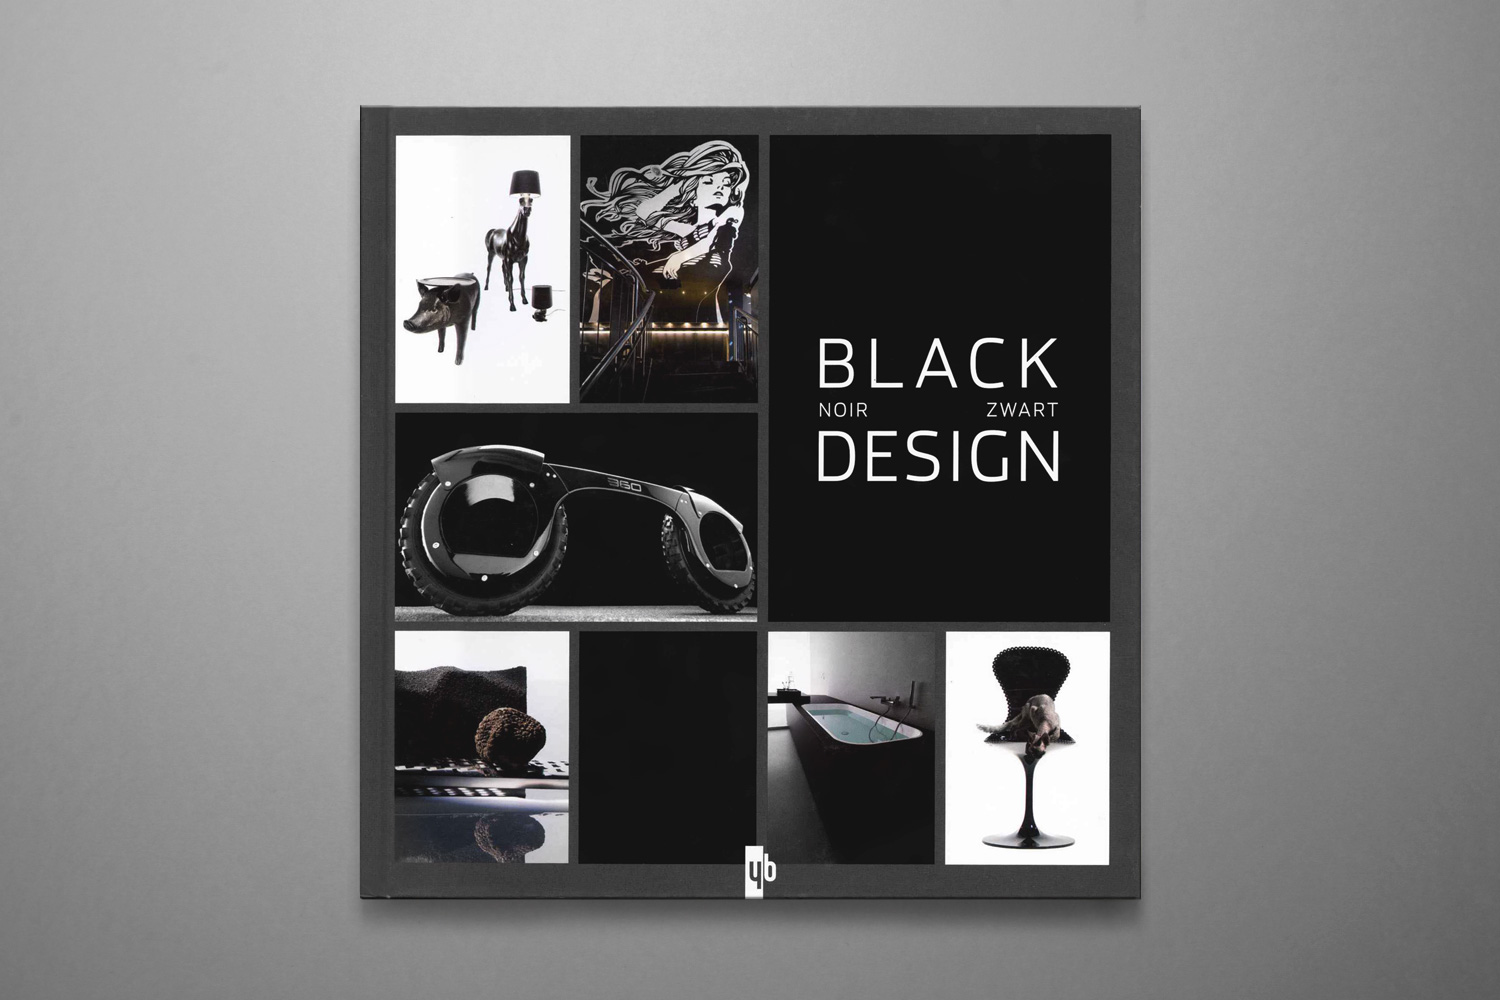 Black Design - YB editions2009ISBN-10 : 2355370222ISBN-13 : 978-2355370229